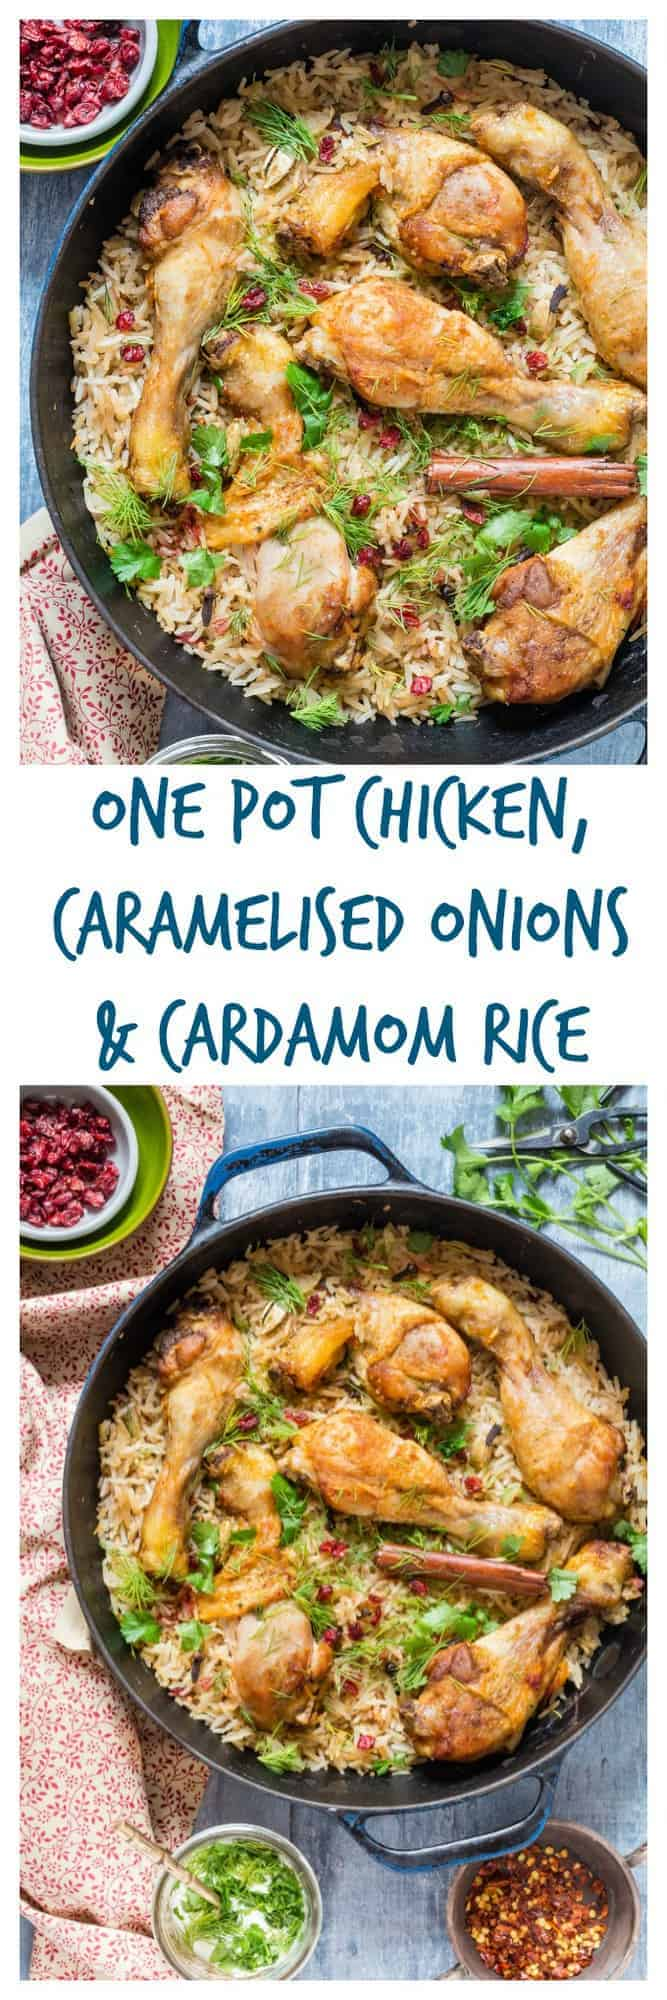 One Pot Chicken With Caramelized Onions, Cardamom And Barberry Rice | Recipes From A Pantry